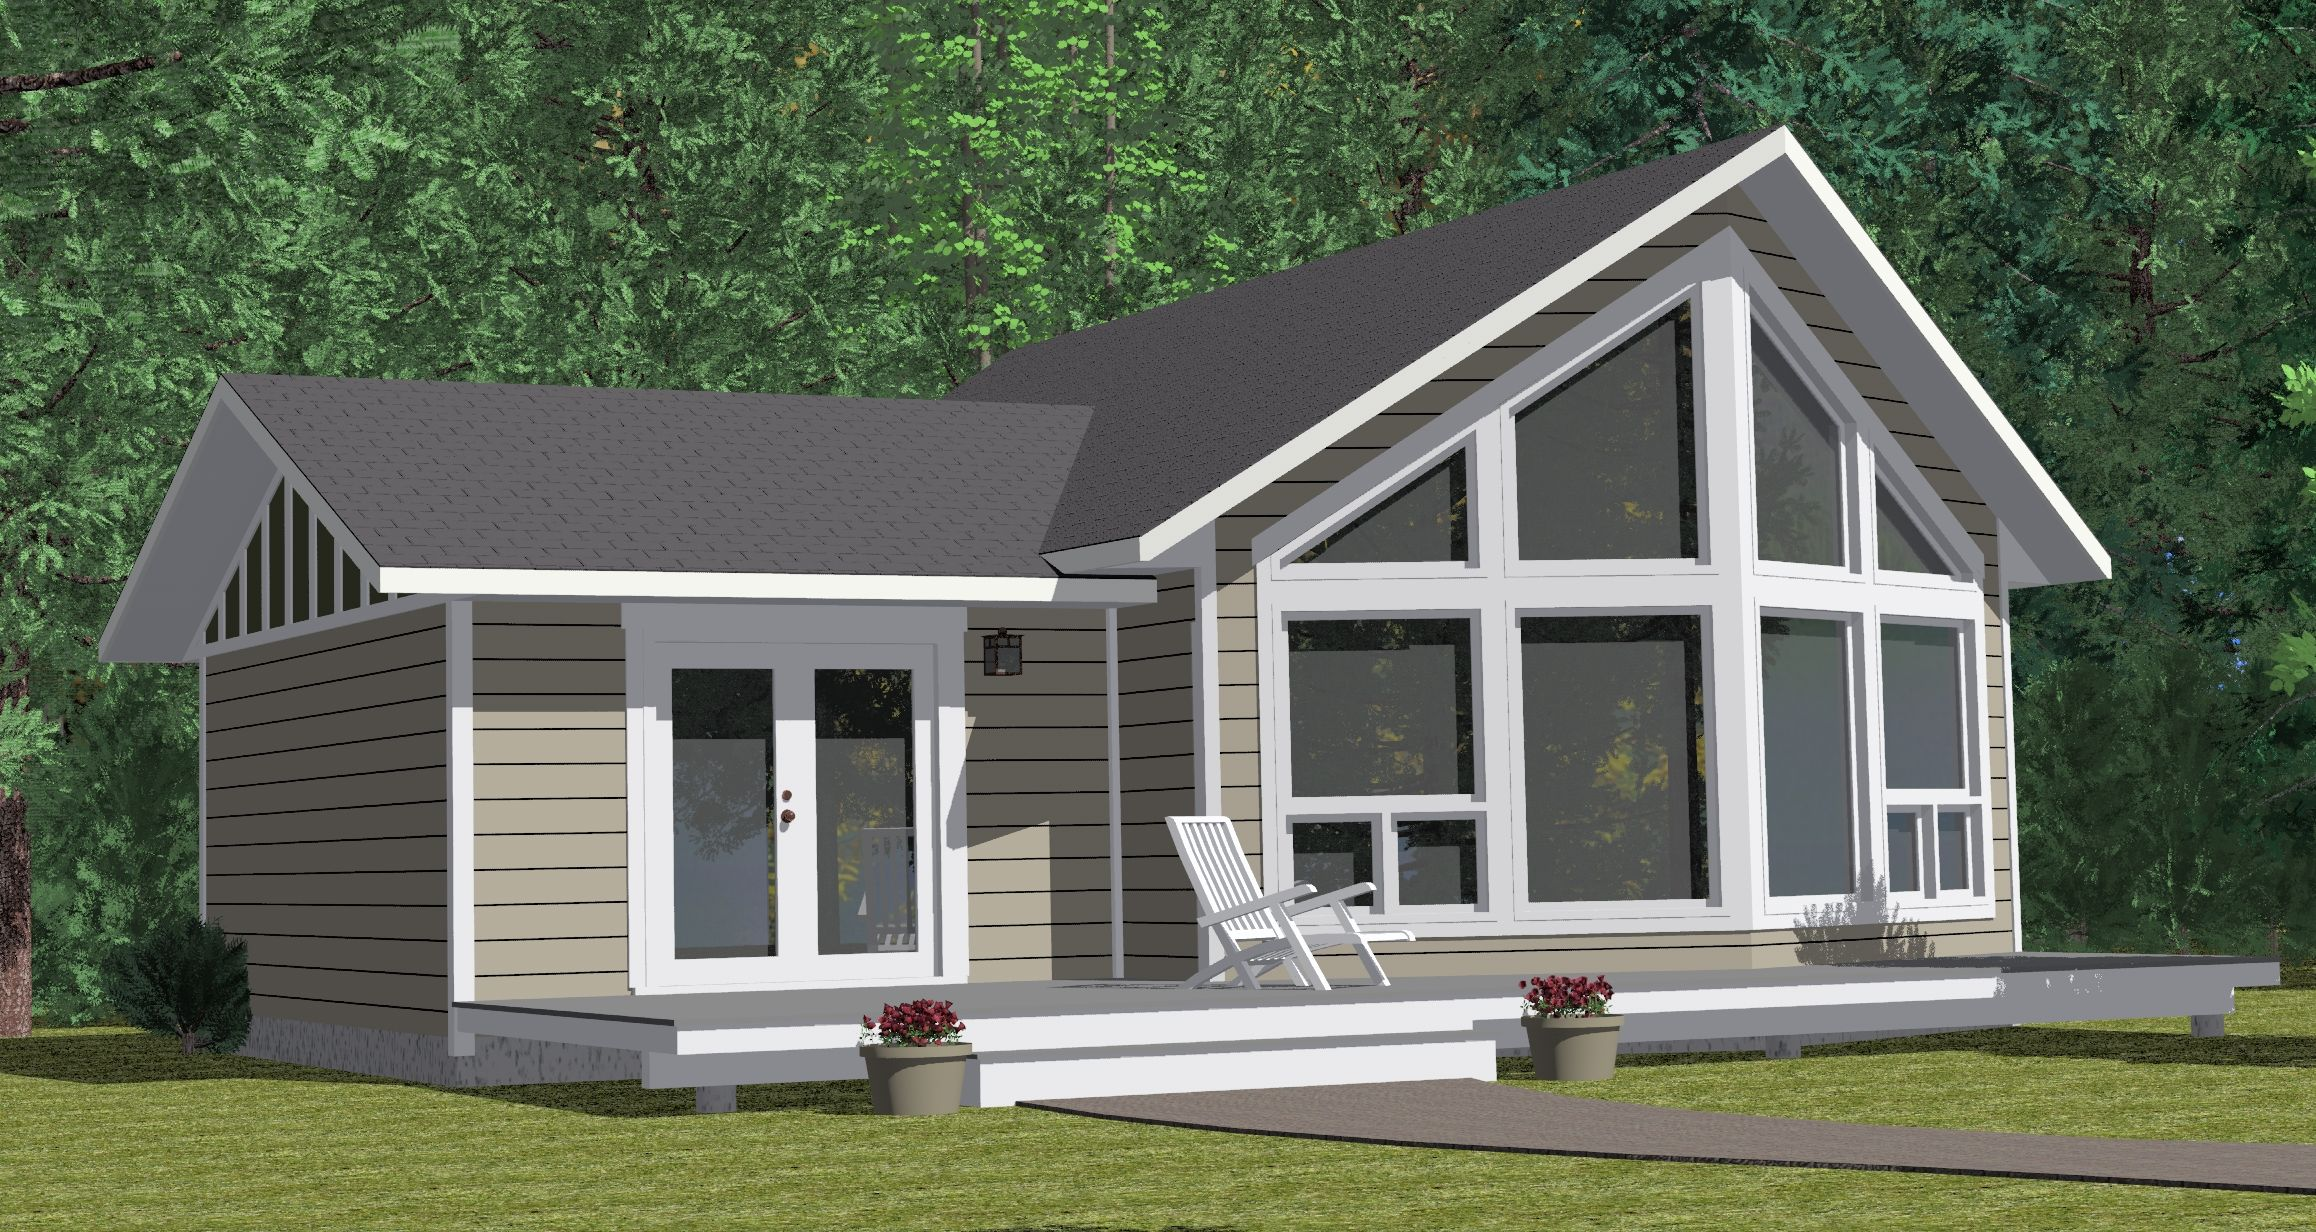 The Bowron - Prefabricated Home Plans | Winton Homes | Cottage ... on panelized home plans, traditional house plans, small house plans, ranch house plans, wind house plans, sustainability house plans, tiny house plans, art house plans, bungalow house plans, home prefabricated house plans, contemporary house plans, beach house plans, cabin plans, recycled house plans, miniature doll house plans, garage house plans, cottage house plans, country house plans, post and beam home plans,